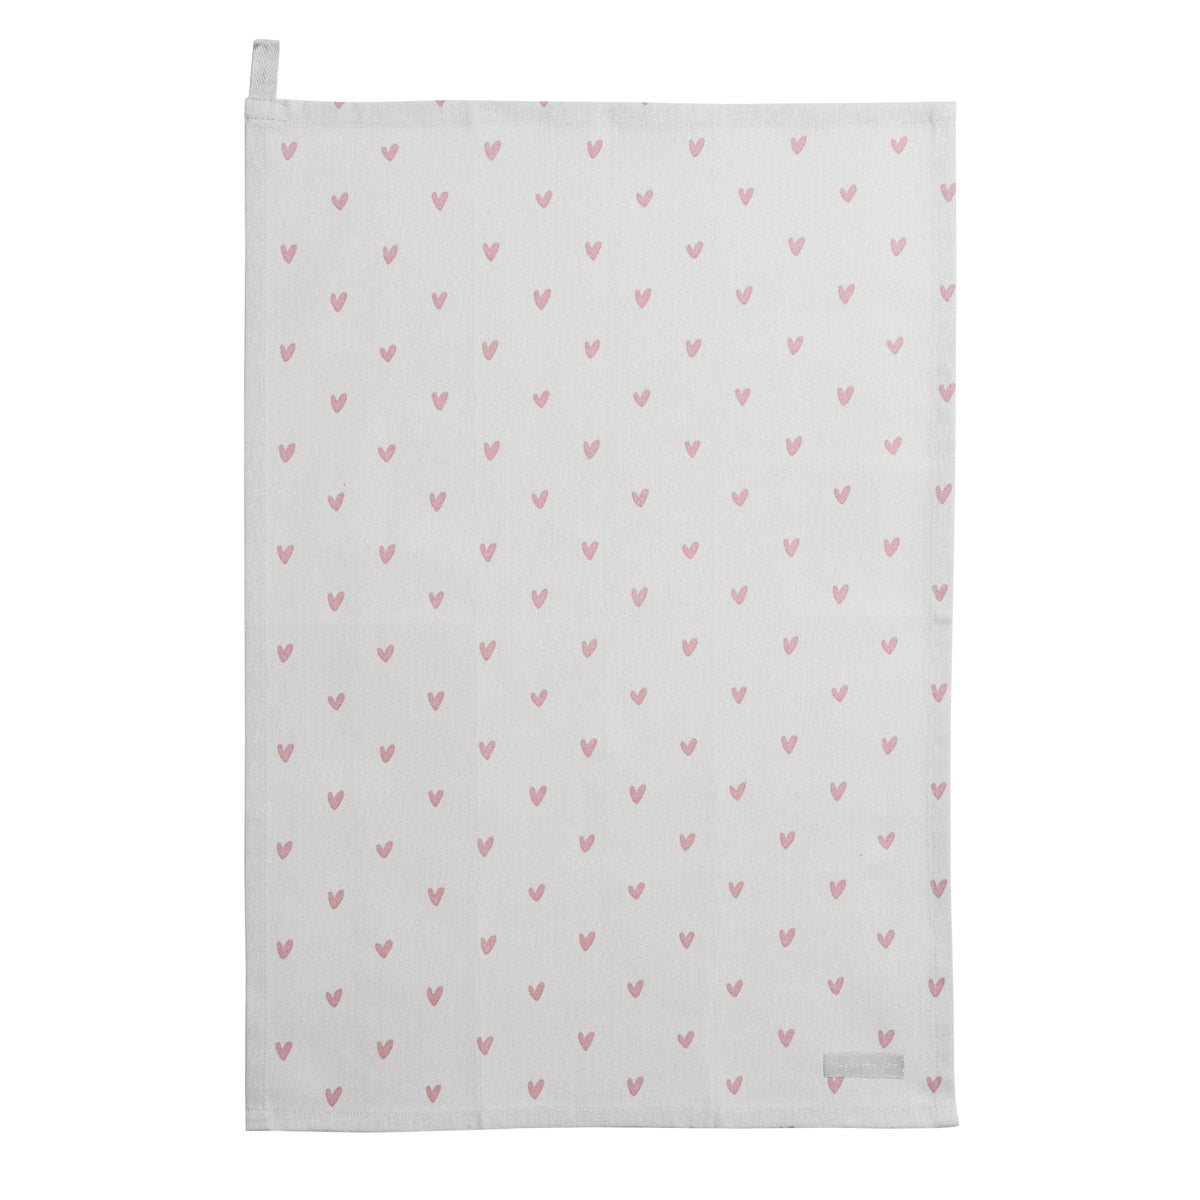 Hearts Tea Towel Set of 2 Pink & Grey Hearts